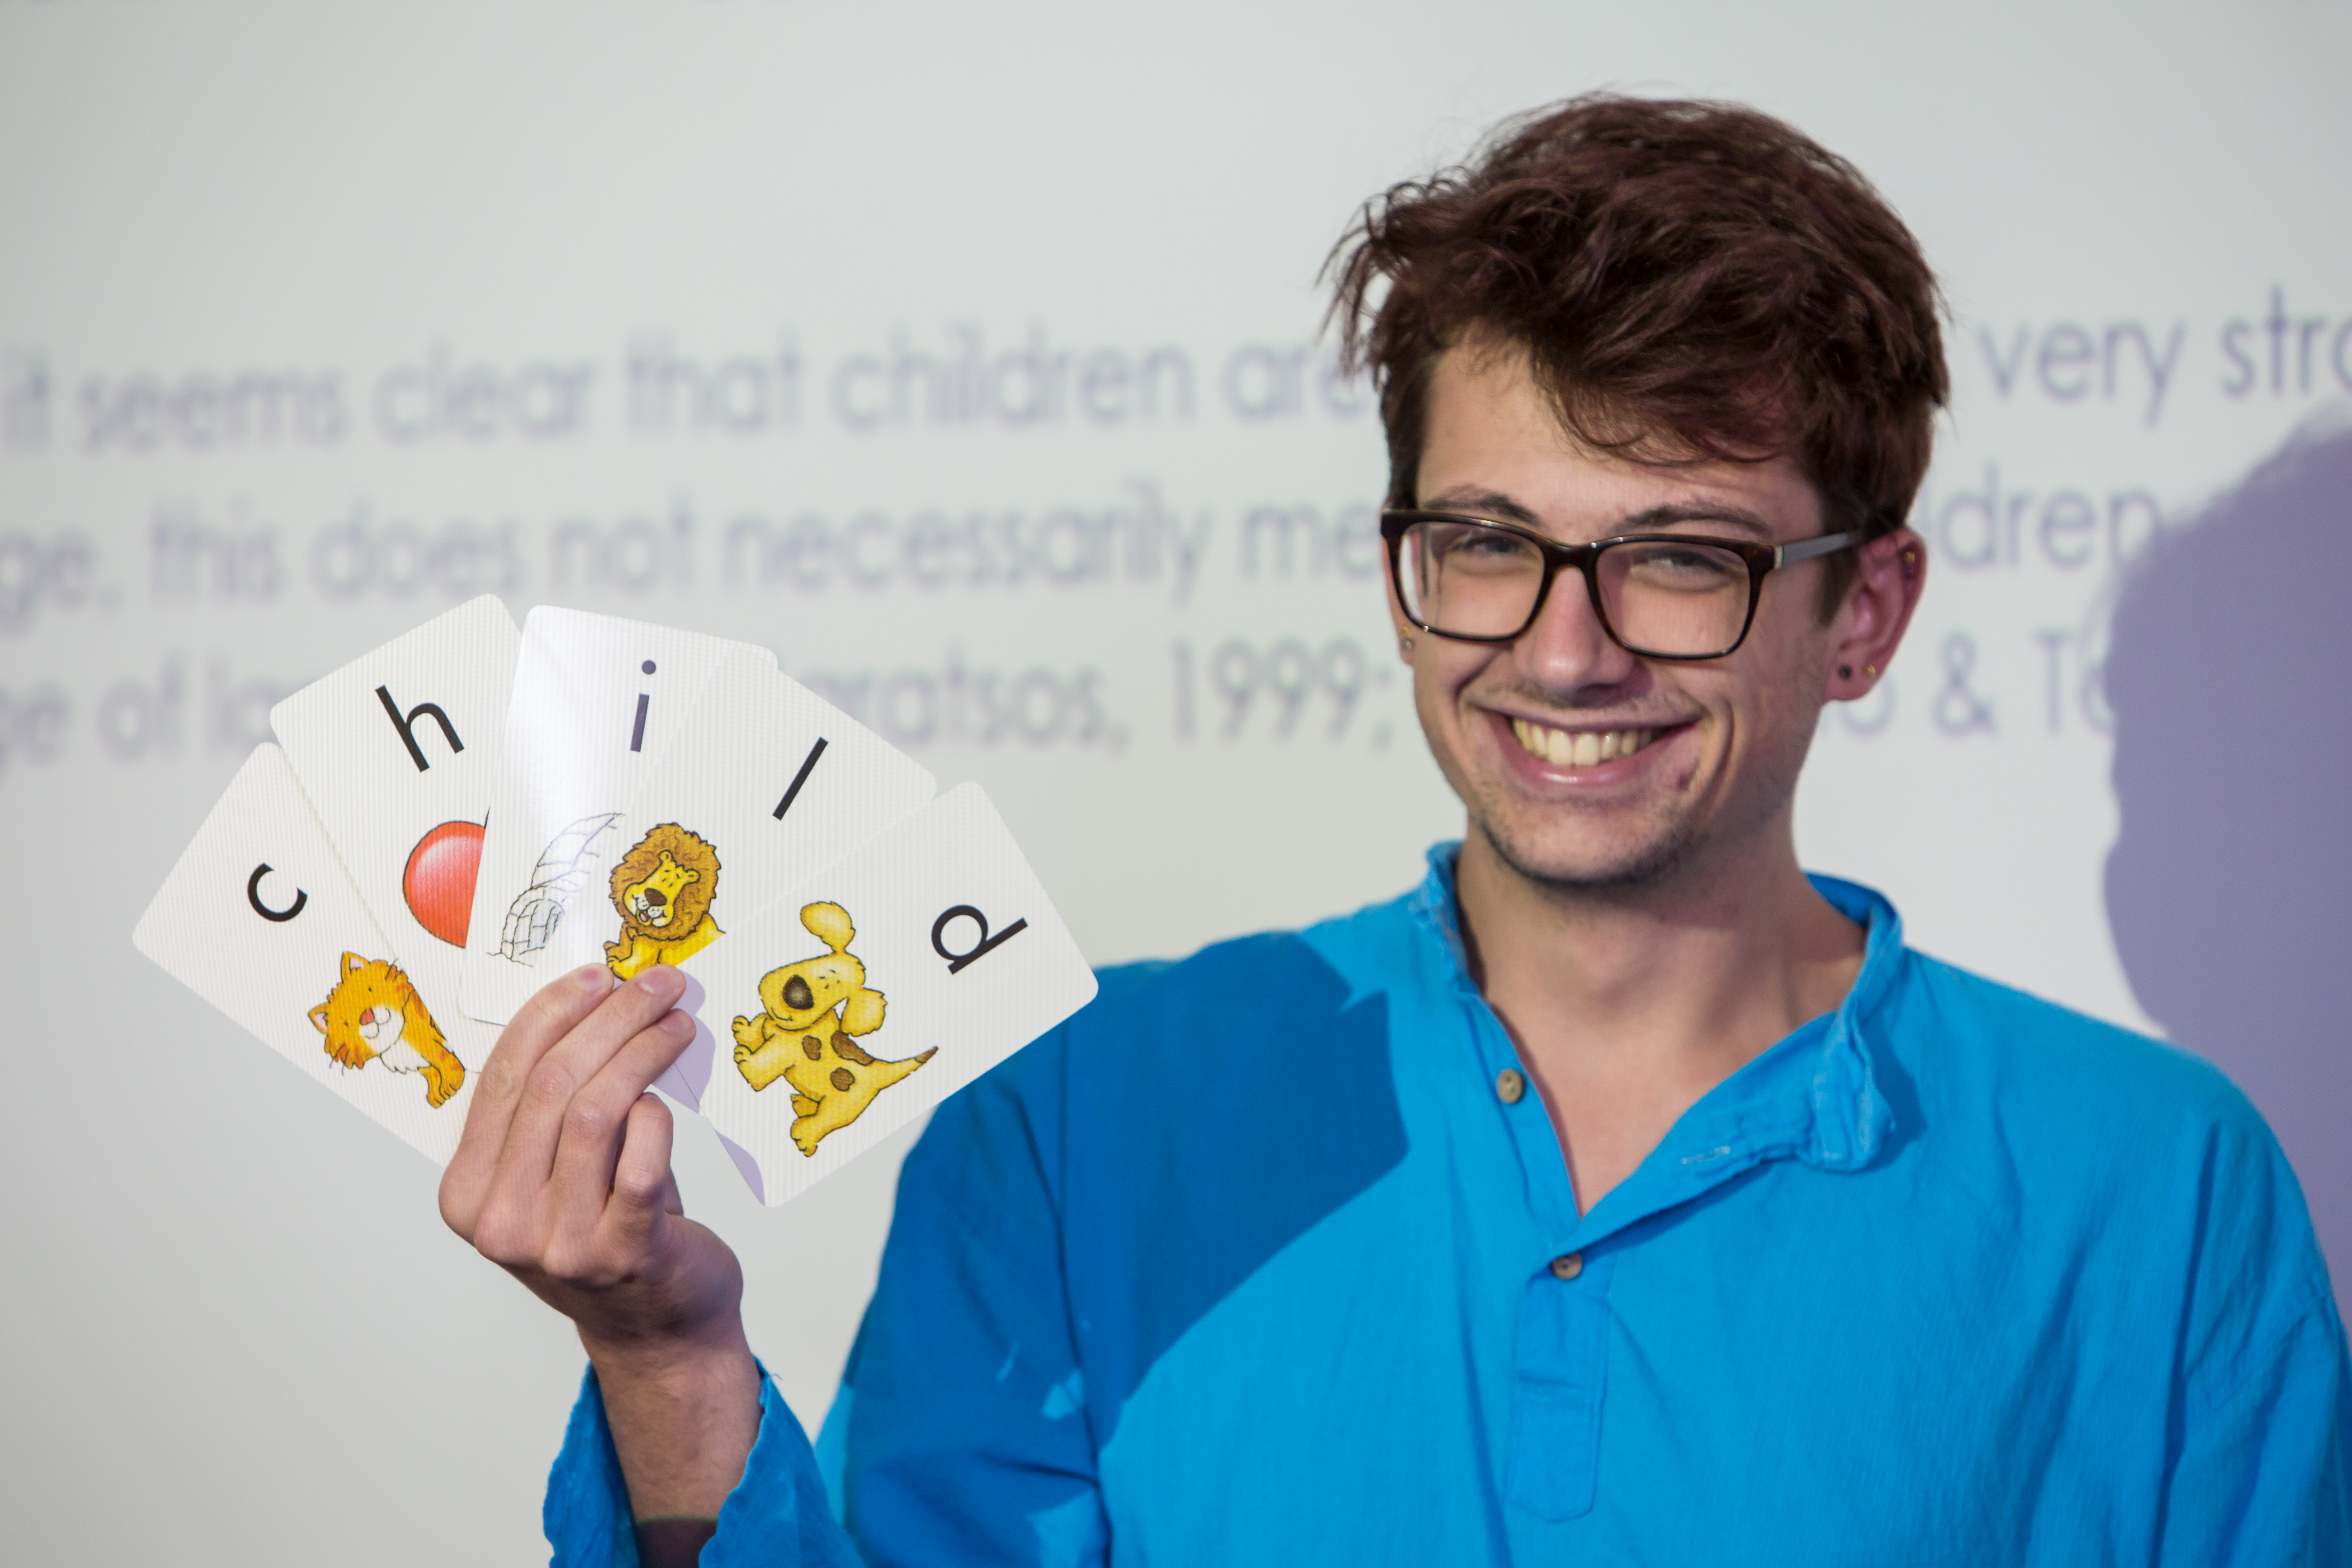 Student holding up playing cards with letters on.